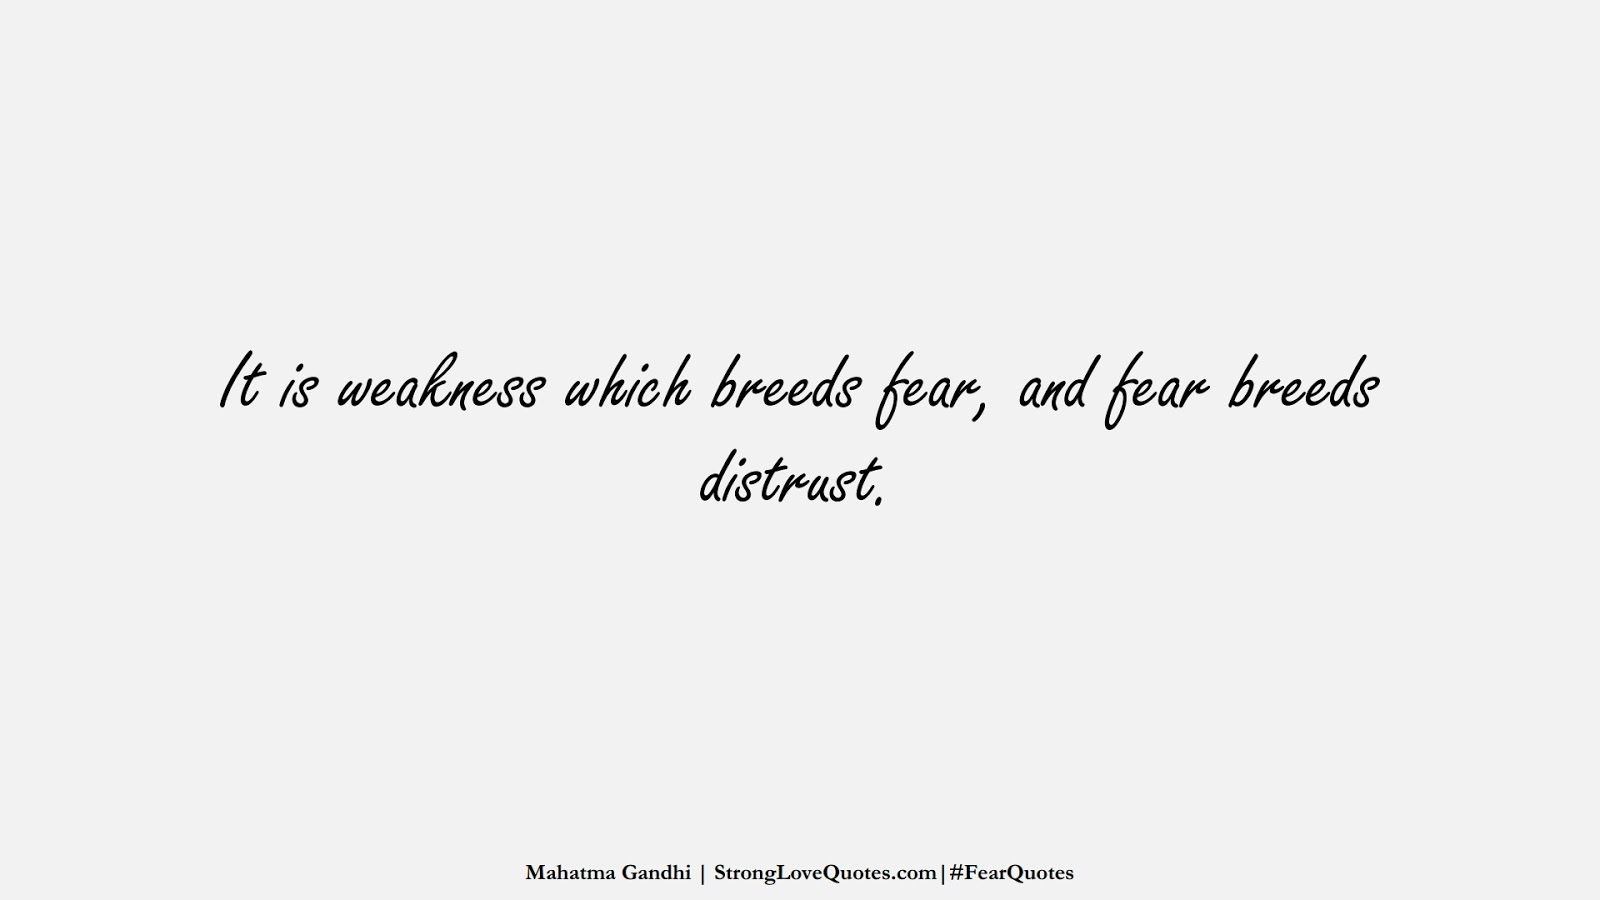 It is weakness which breeds fear, and fear breeds distrust. (Mahatma Gandhi);  #FearQuotes